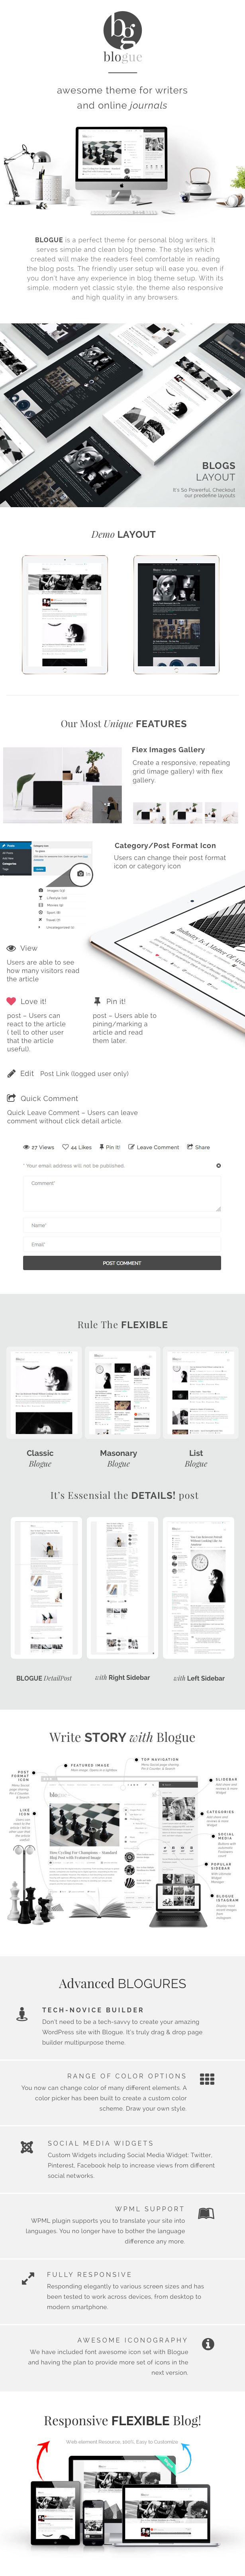 BLOGUE is a perfect theme for personal blog writers. It serves simple and clean blog theme. The styles which created will make the readers feel comfortable in reading the blog posts. The friendly user setup will ease you, even if you don't have any experience in blog theme setup. With its simple, modern yet classic style, the theme also responsive and high quality in any browsers